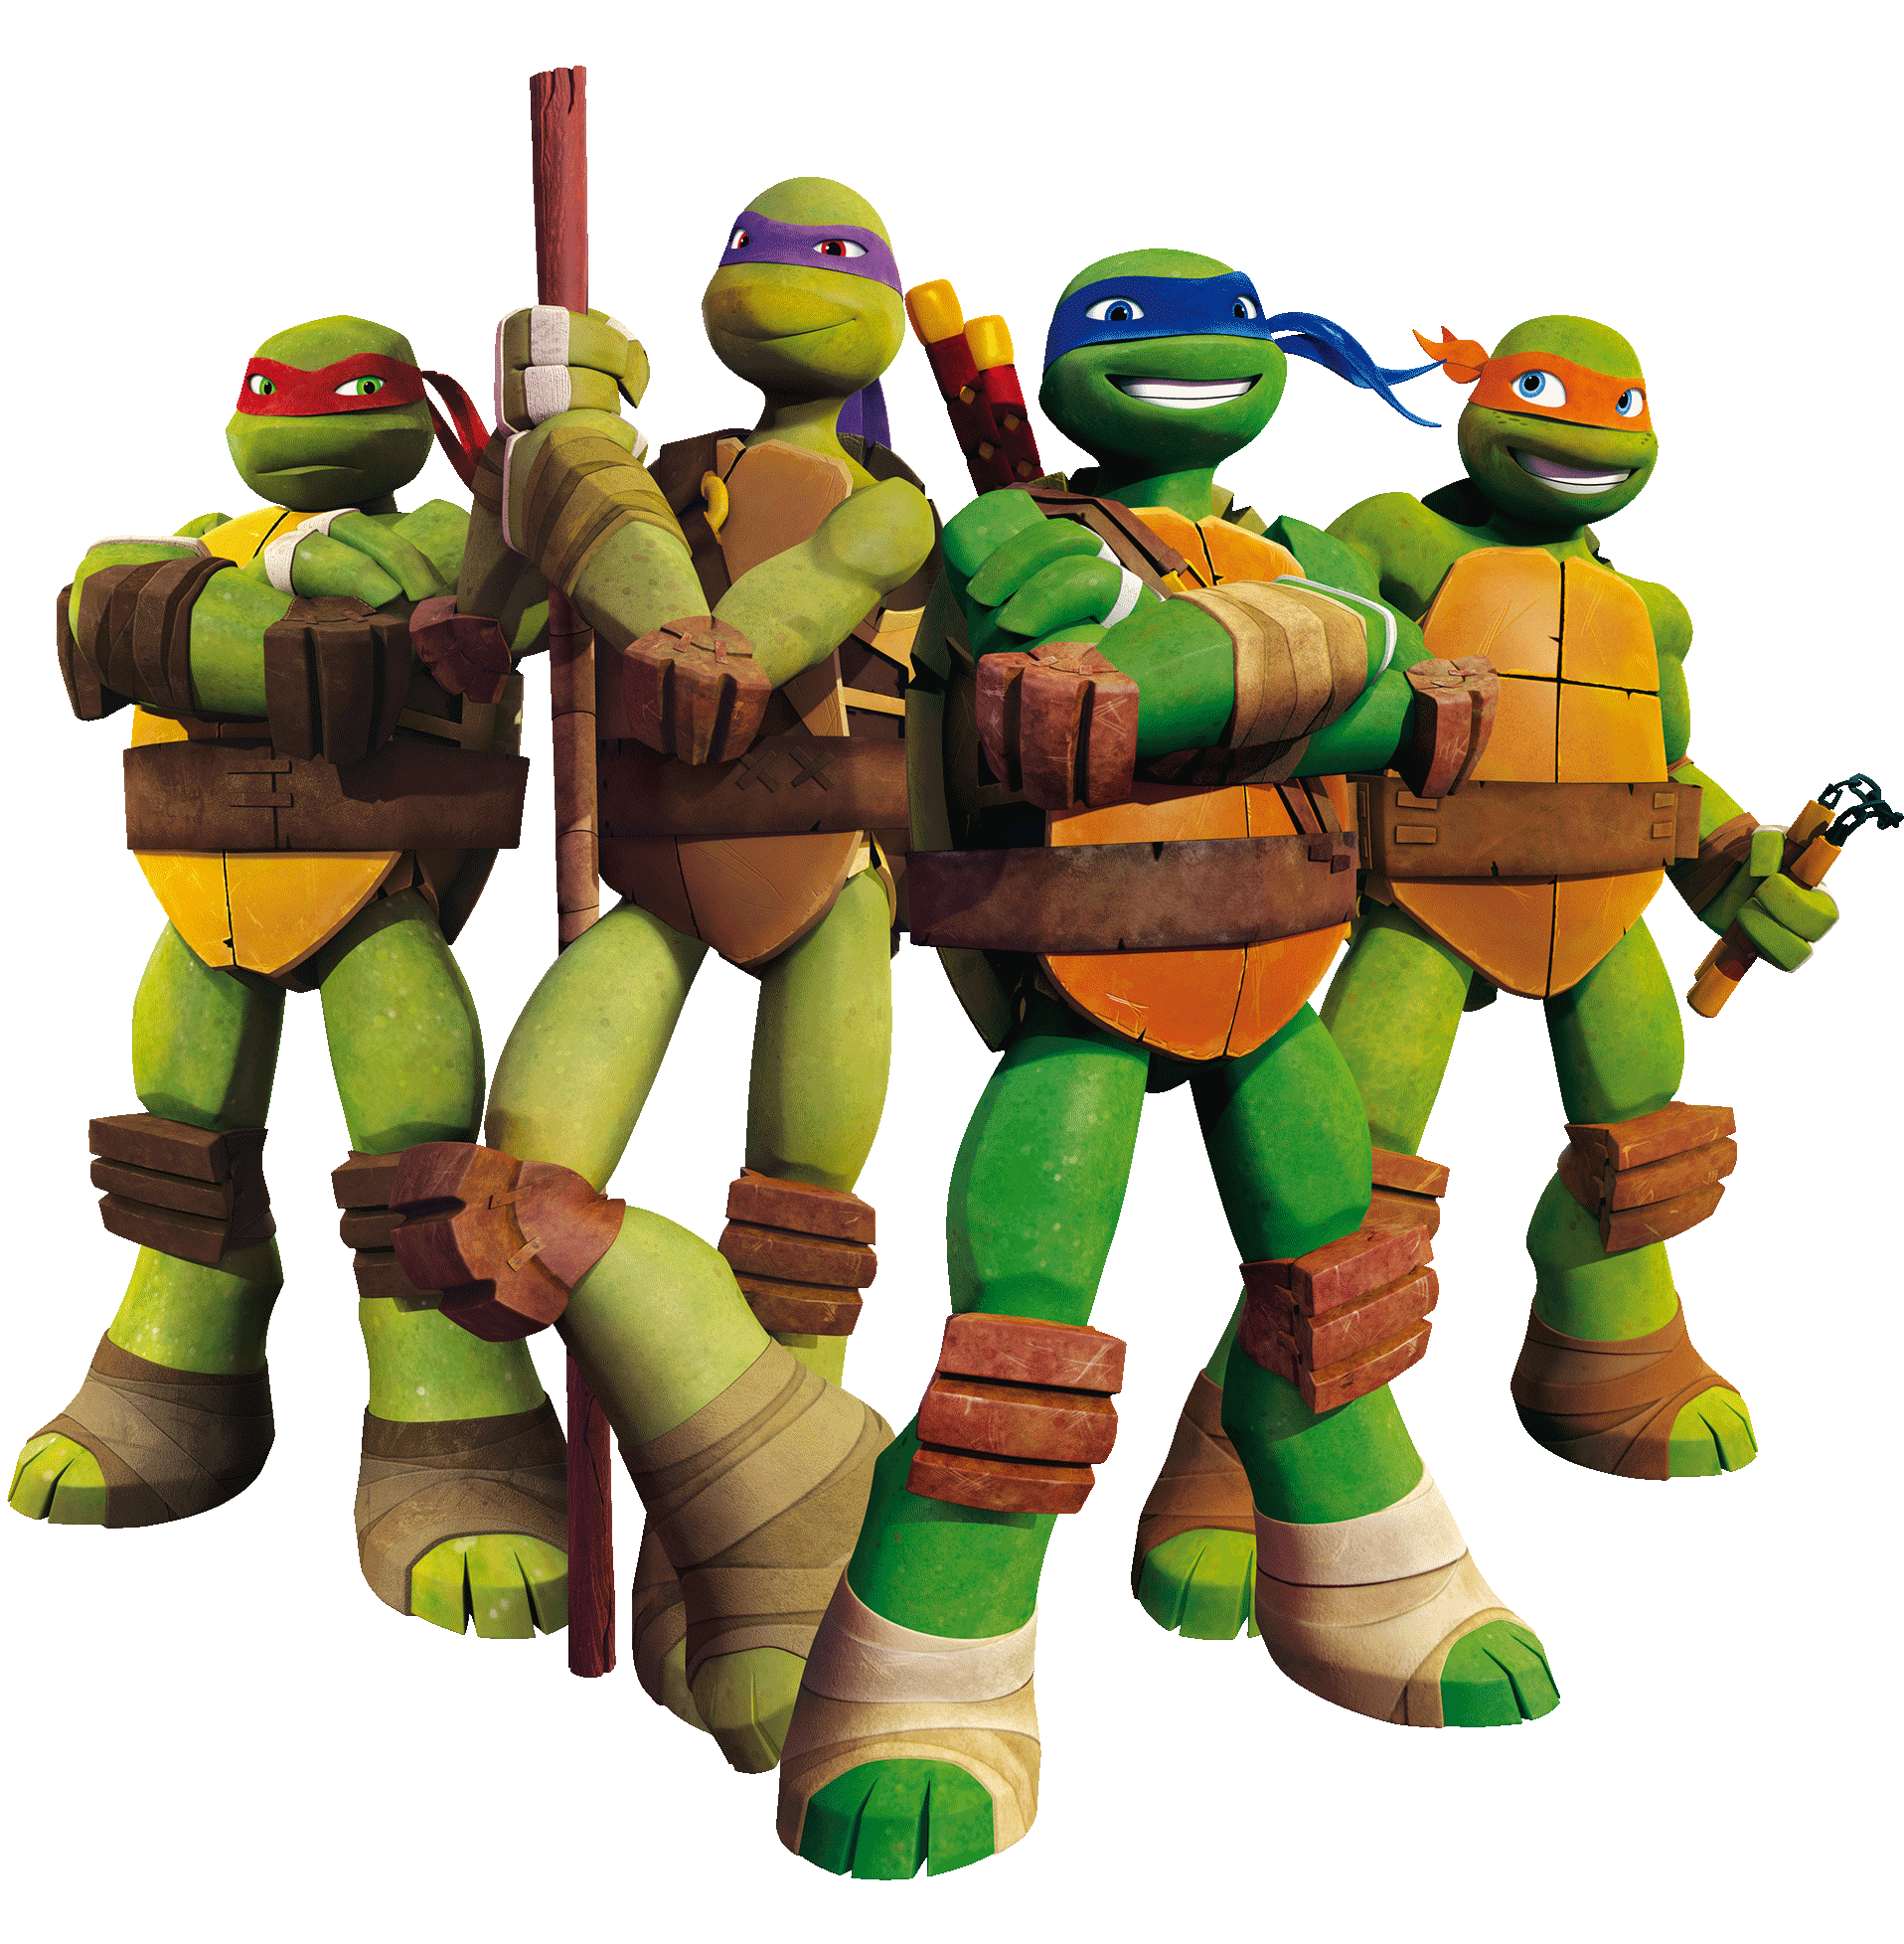 Teenage Mutant Ninja Turtles 2012 Neuralizer Toy : Teenage mutant ninja turtles secrets of the sewer